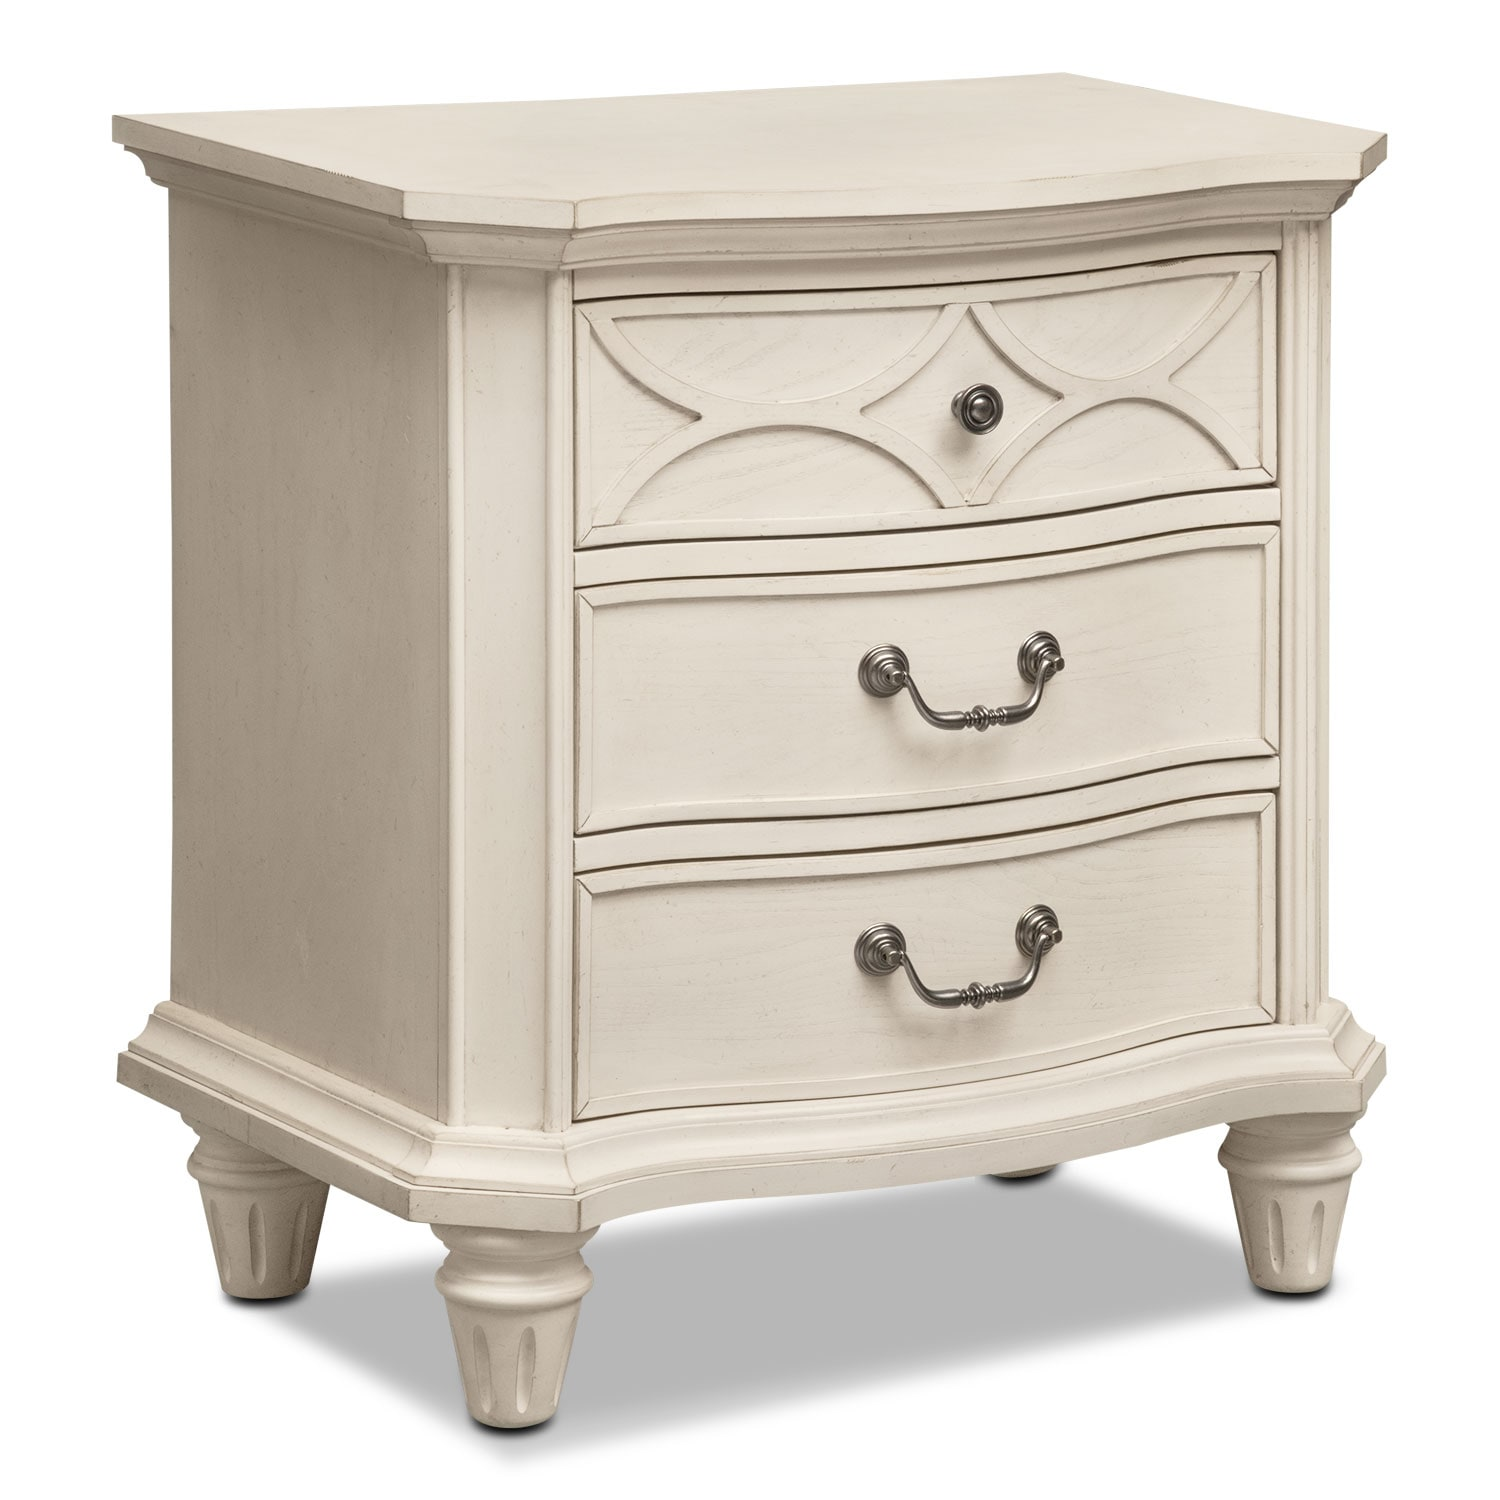 Chelsea Nightstand - Bisque White